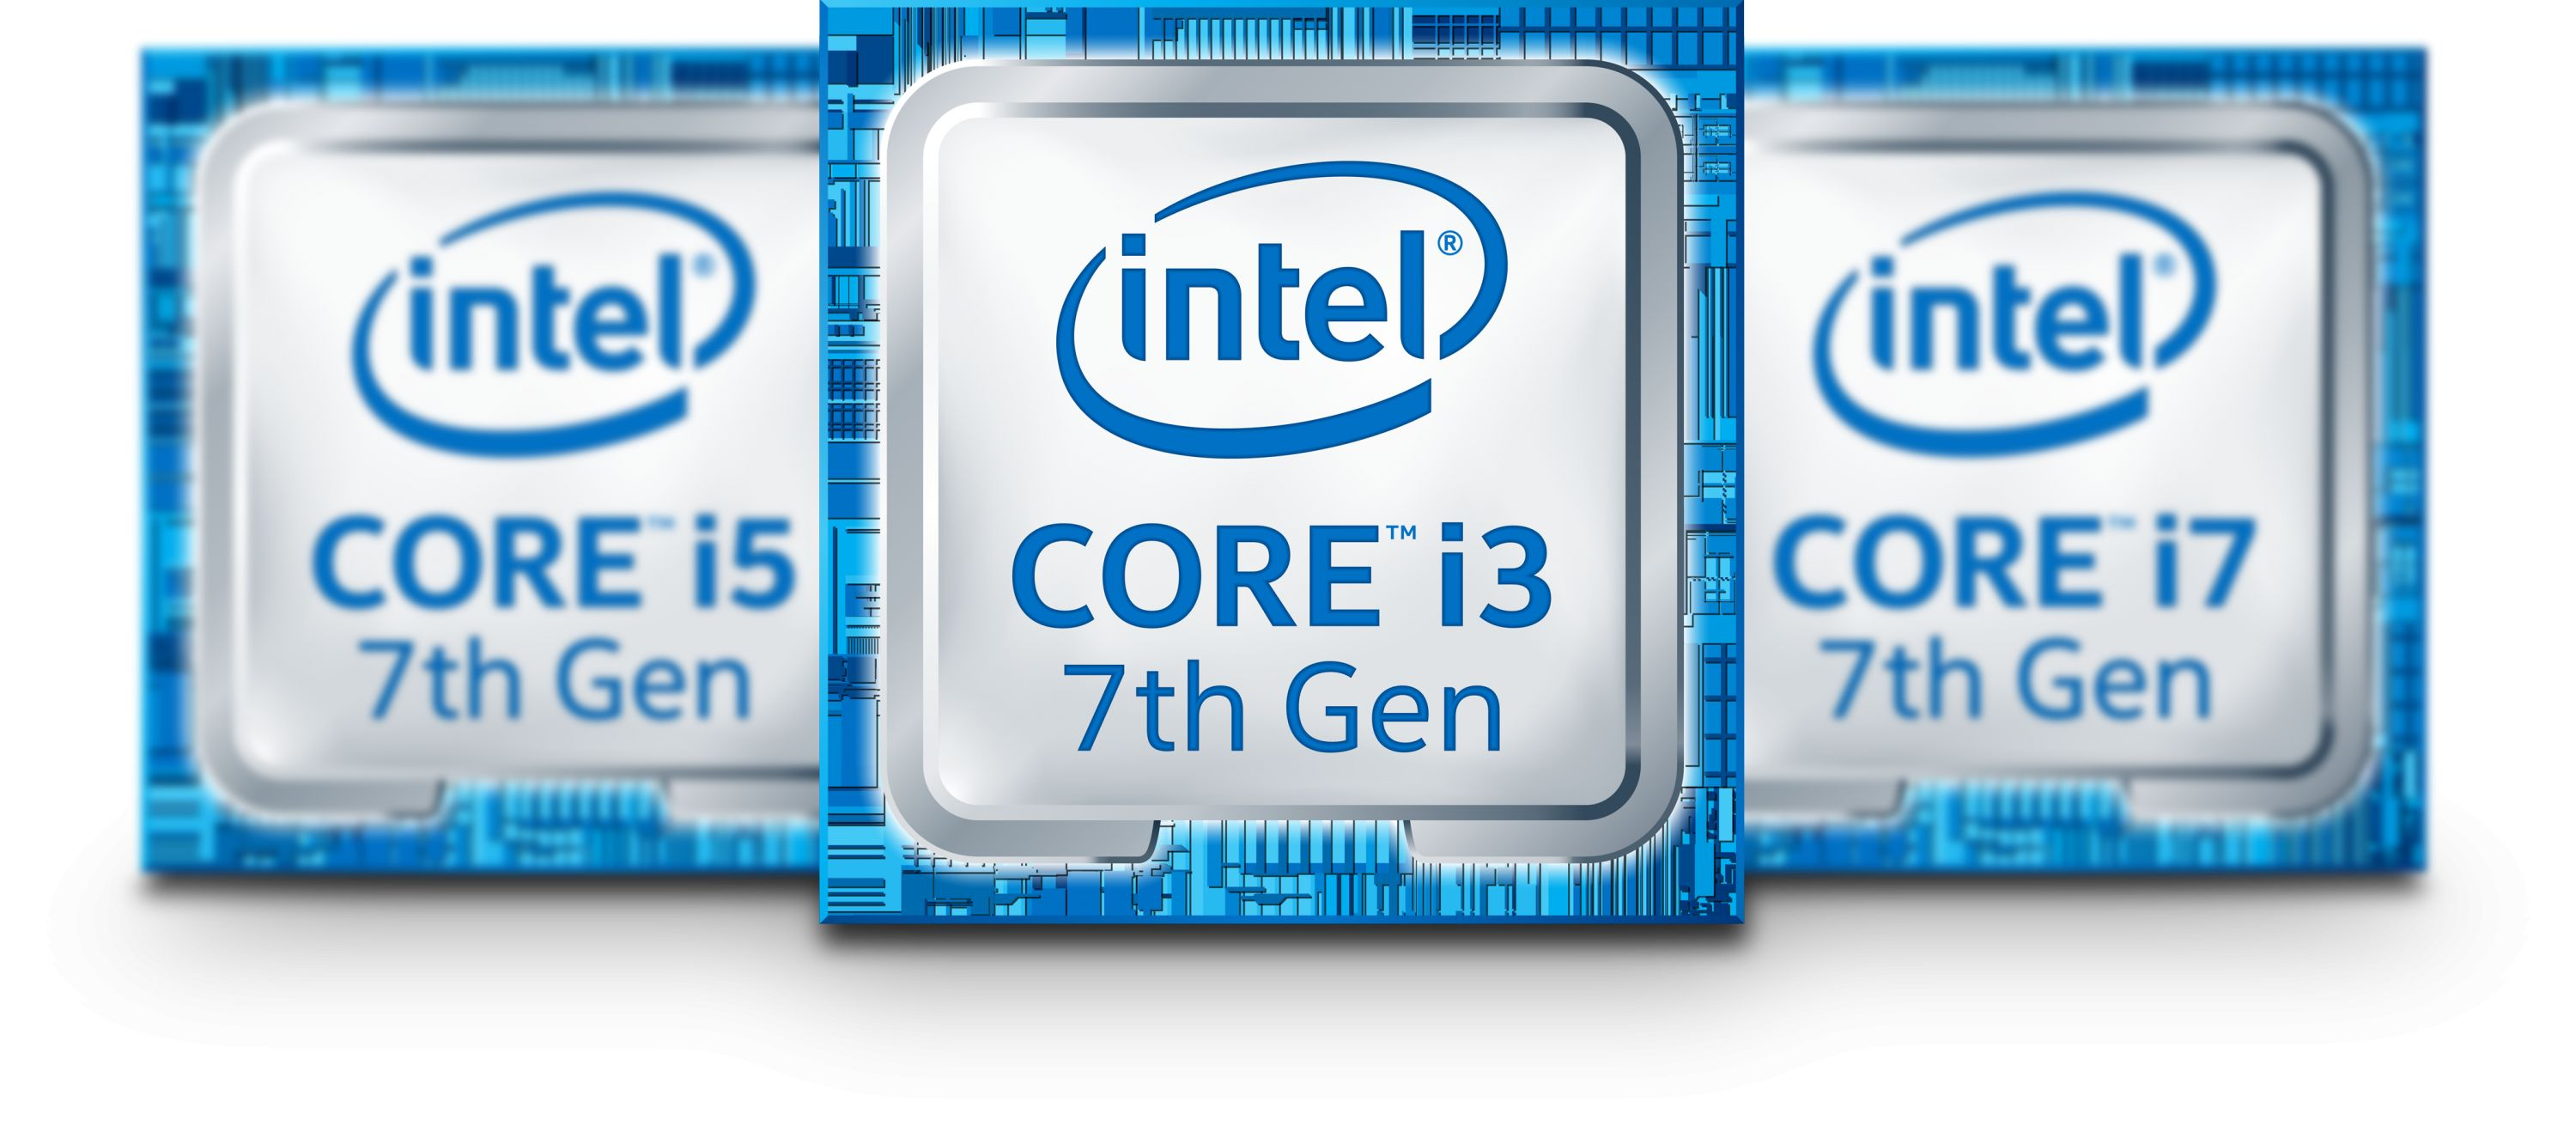 Intel Kaby Lake 7th Generation Core I3 Processors